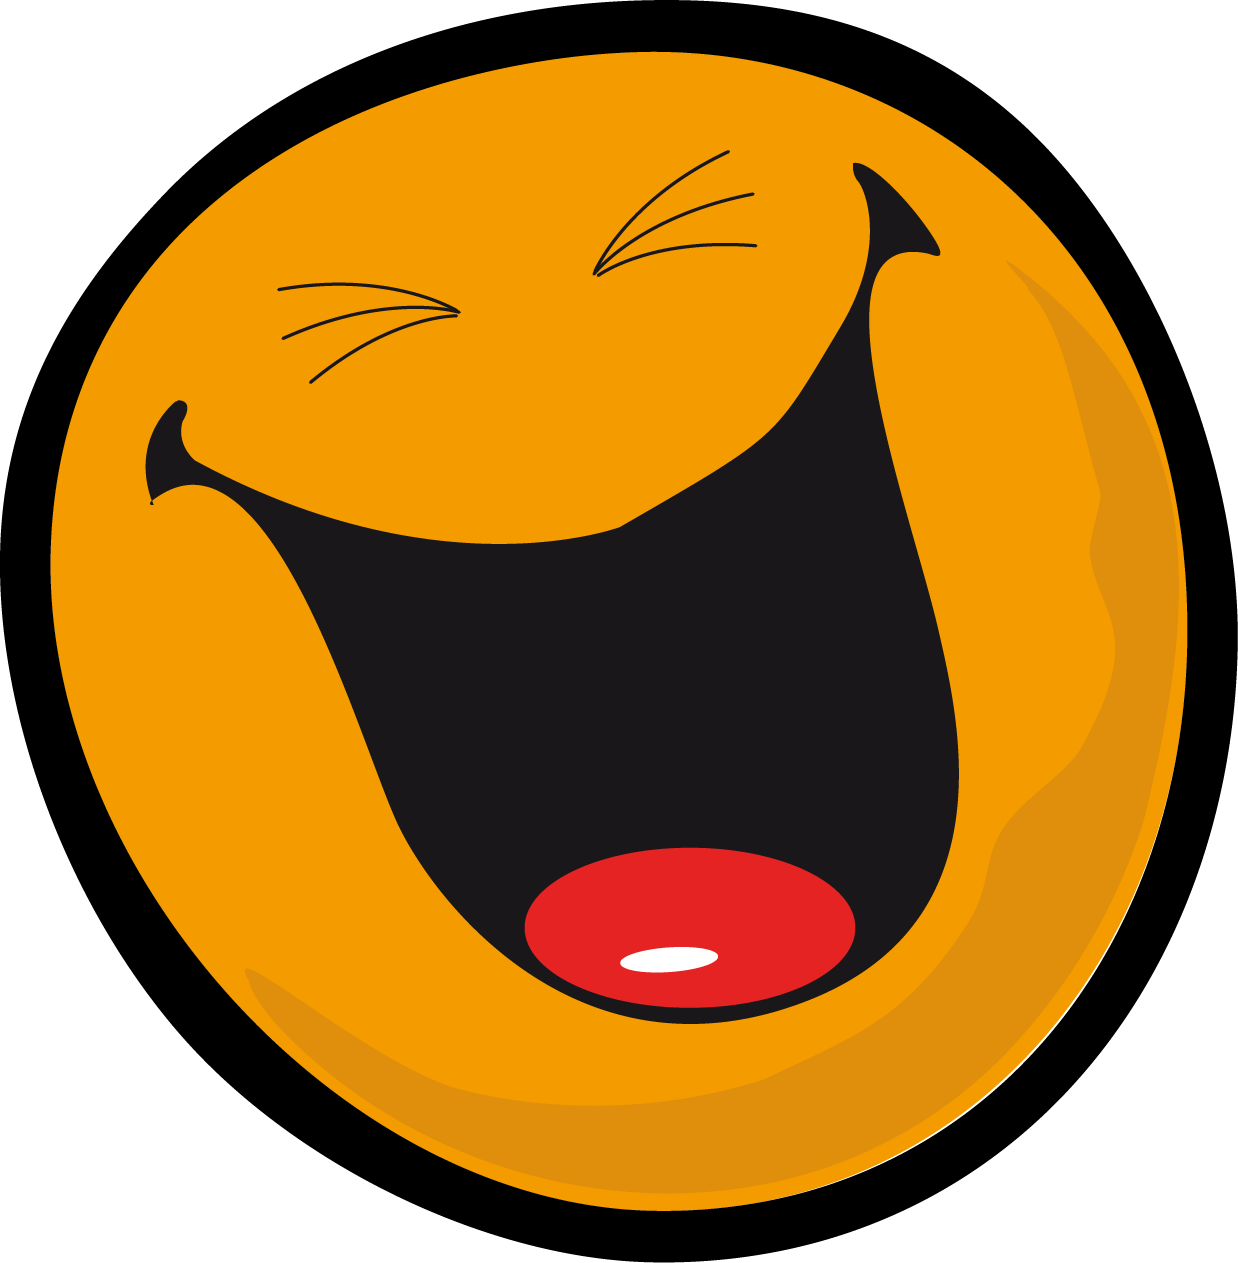 Smiley Face Laugh   Free download on ClipArtMag - Free Clip Art Smiley Faces Emotions